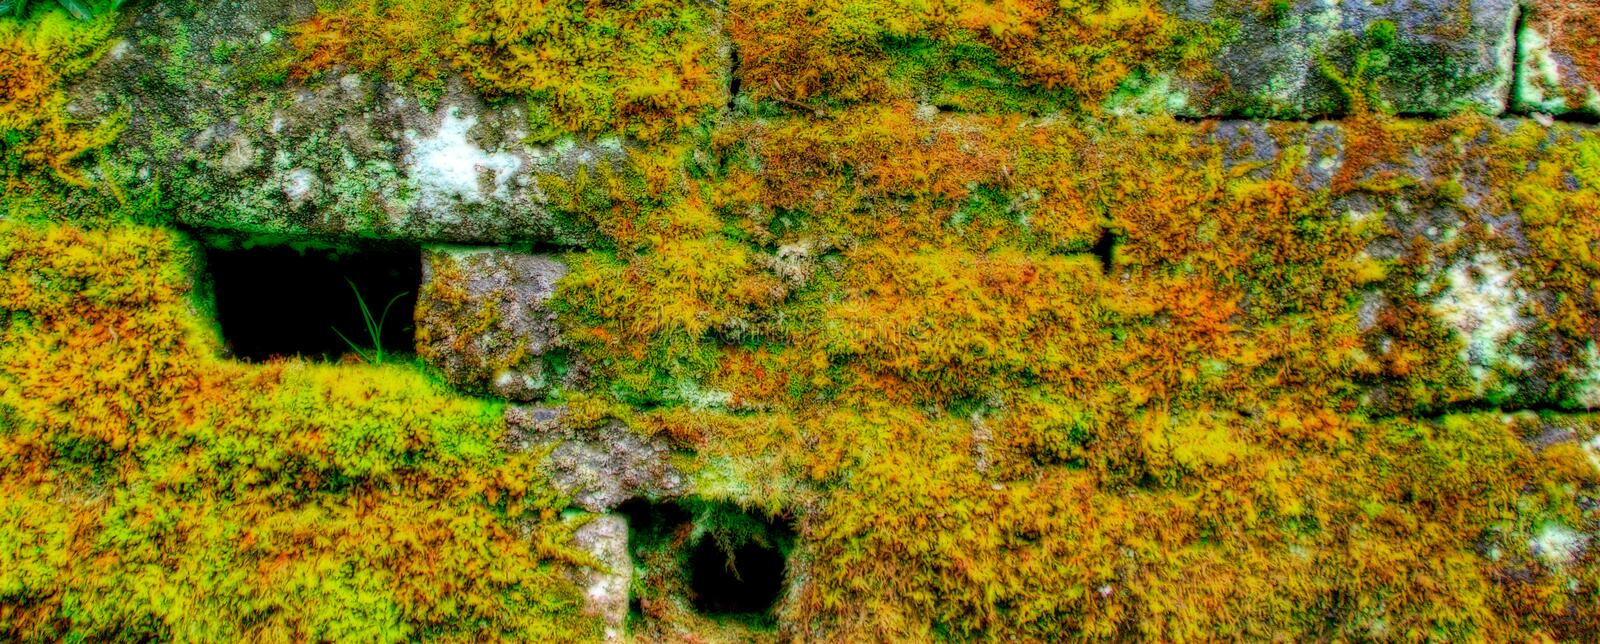 Download Mossed stone wall stock photo. Image of tiles, mossed - 2473632